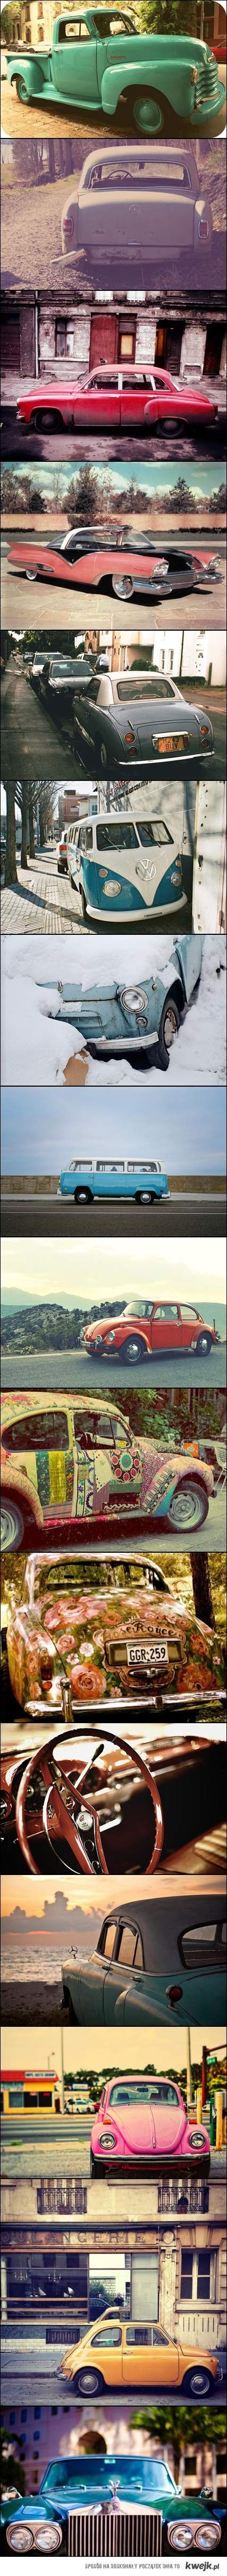 Old school cars are so awesome!